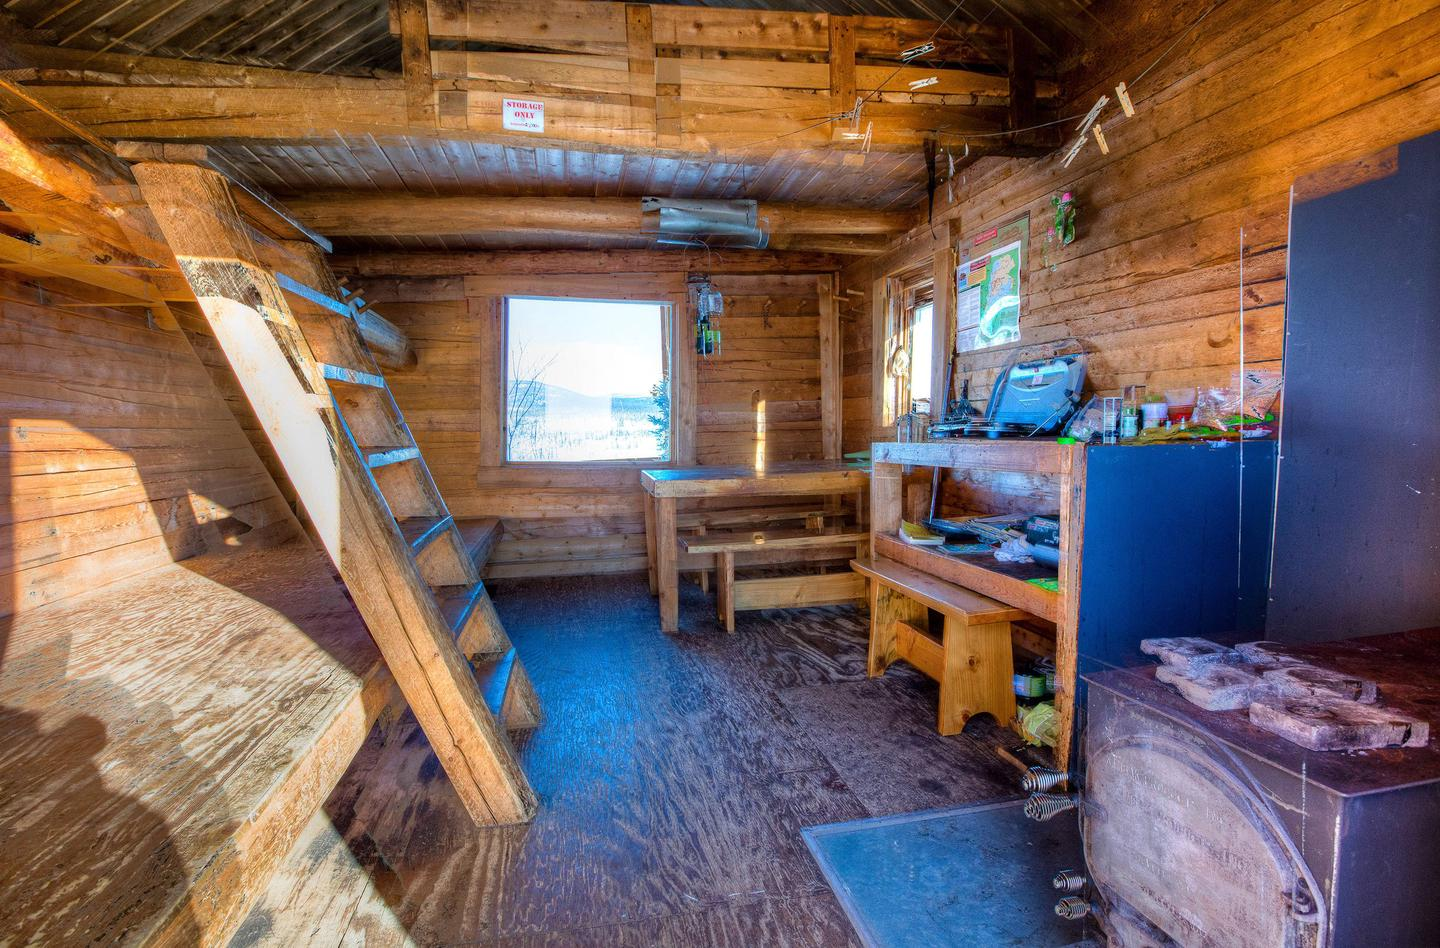 Interior view of small log cabinInterior of Cache Mountain Cabin with bunks, woodstove, and eating area